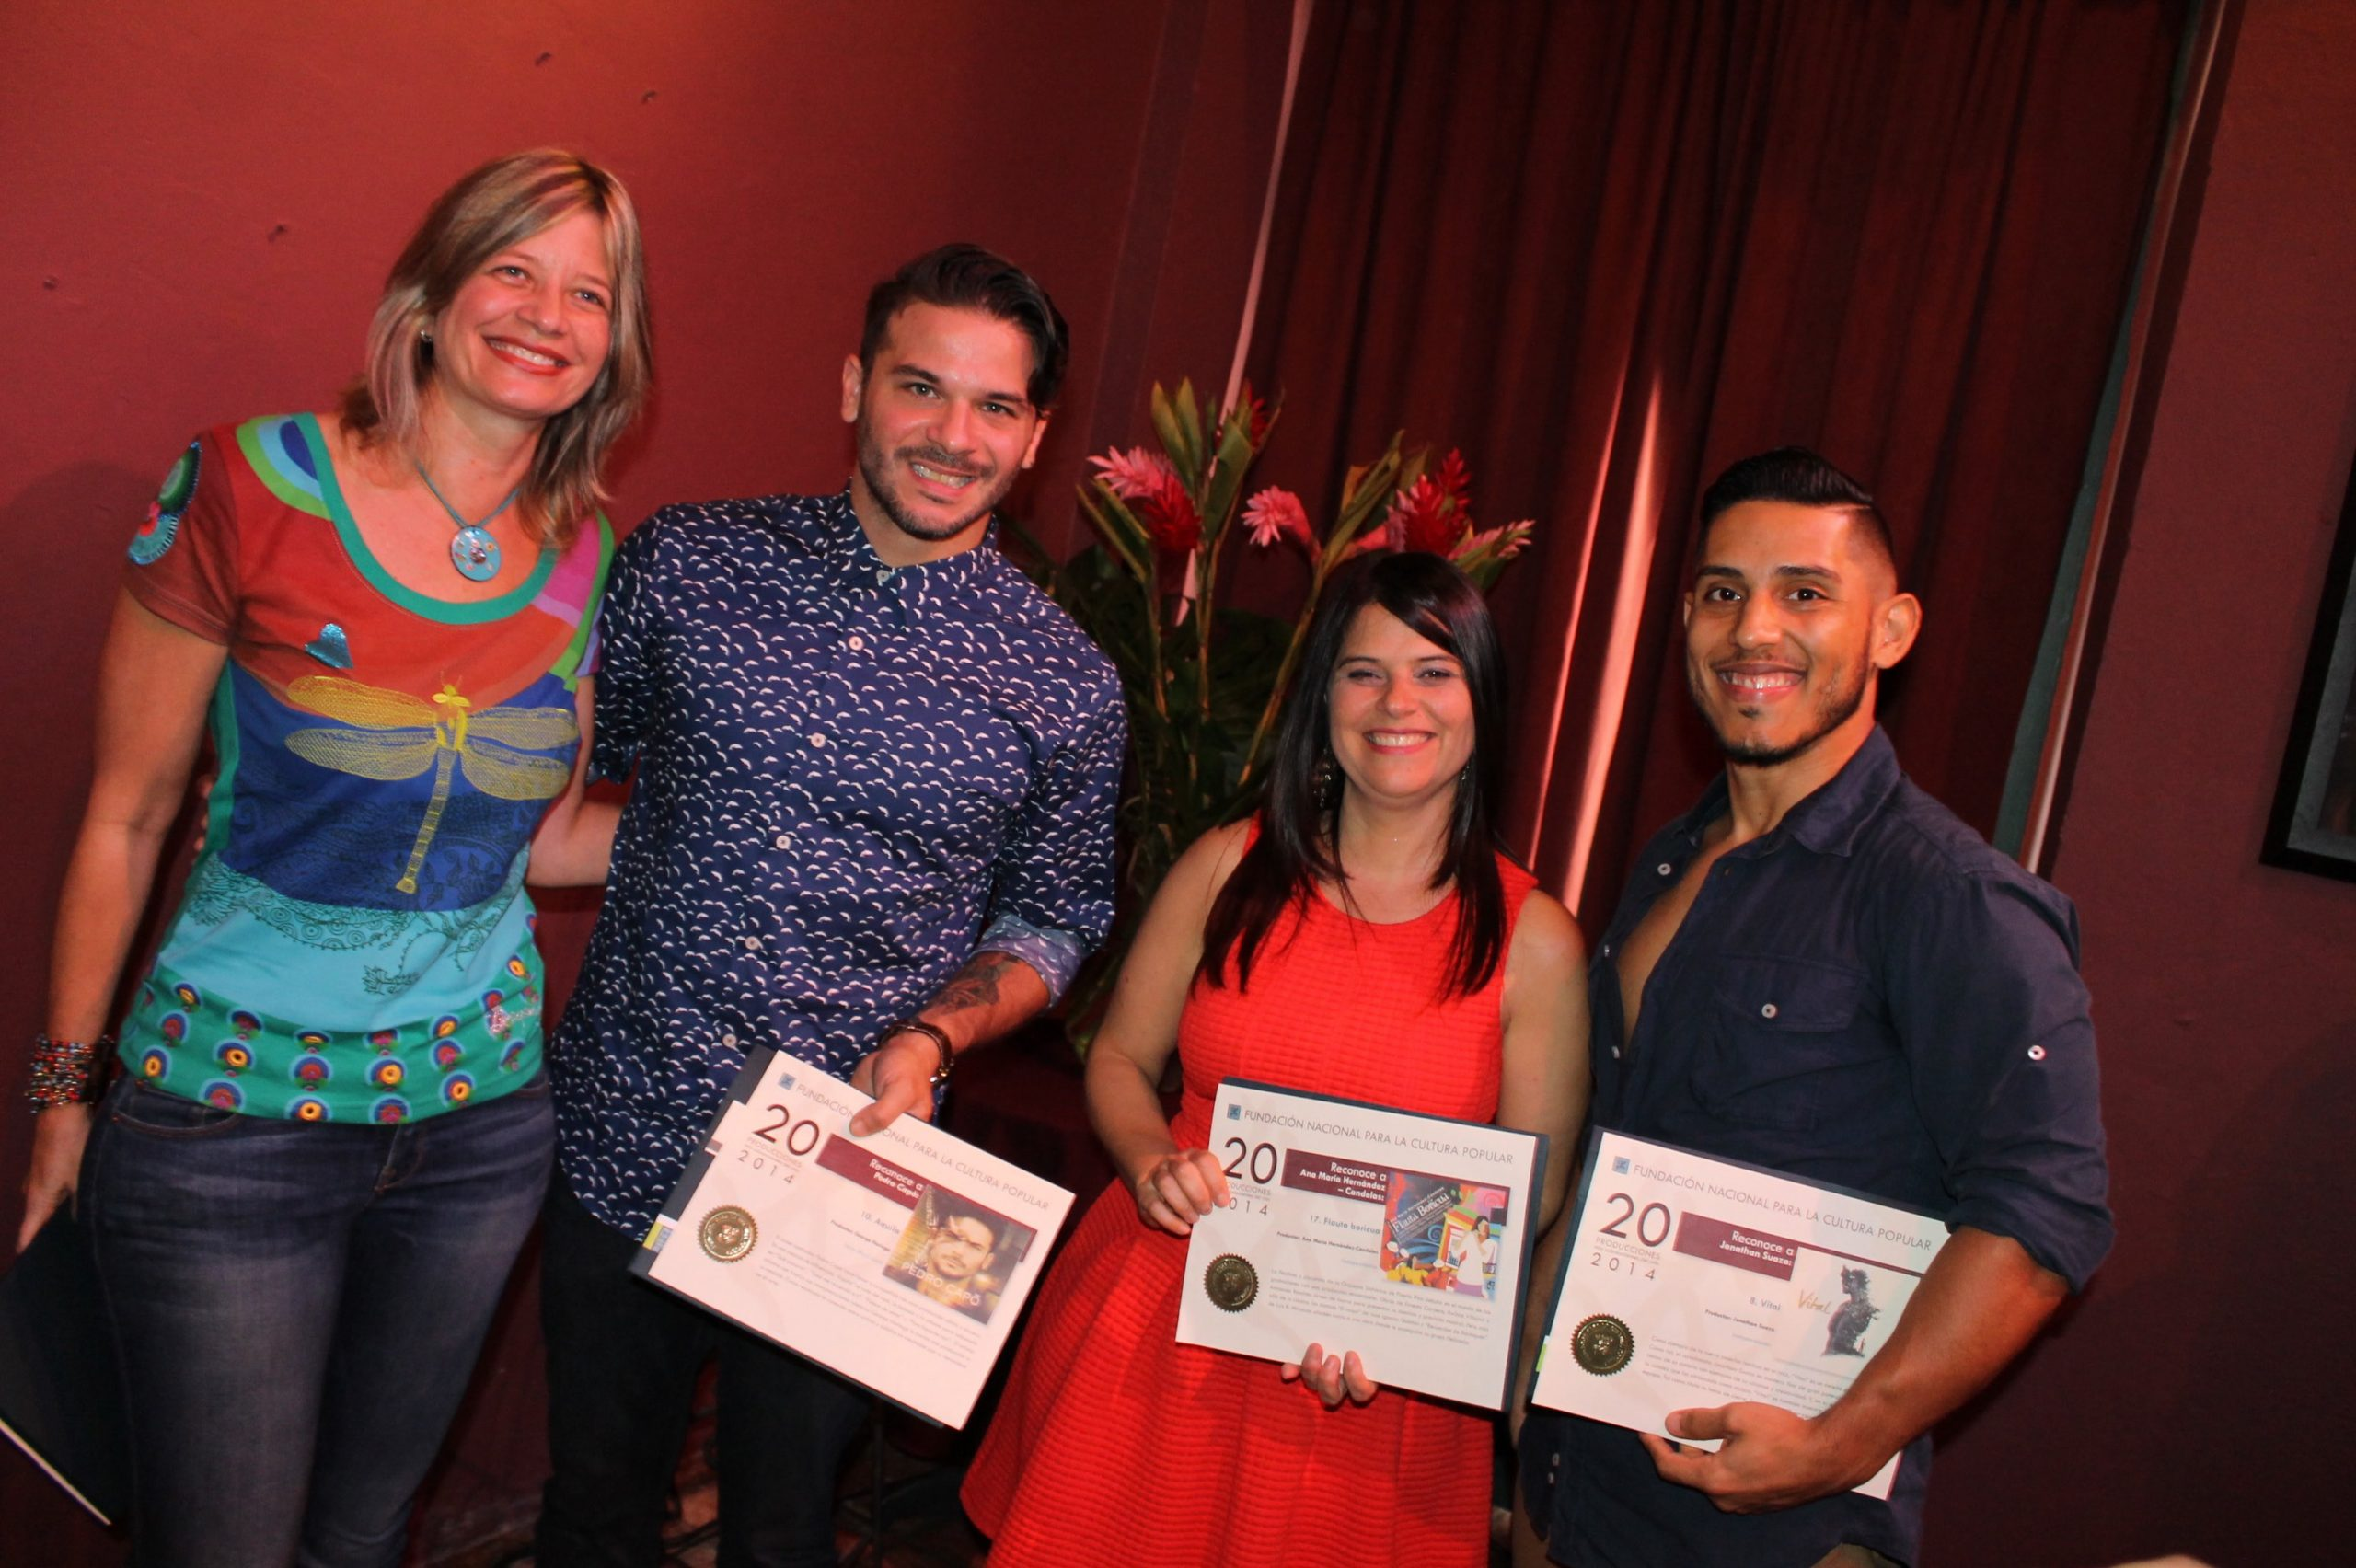 PREMIOS FUNDACION fotos edgar torres 24 mr 2015 (13)